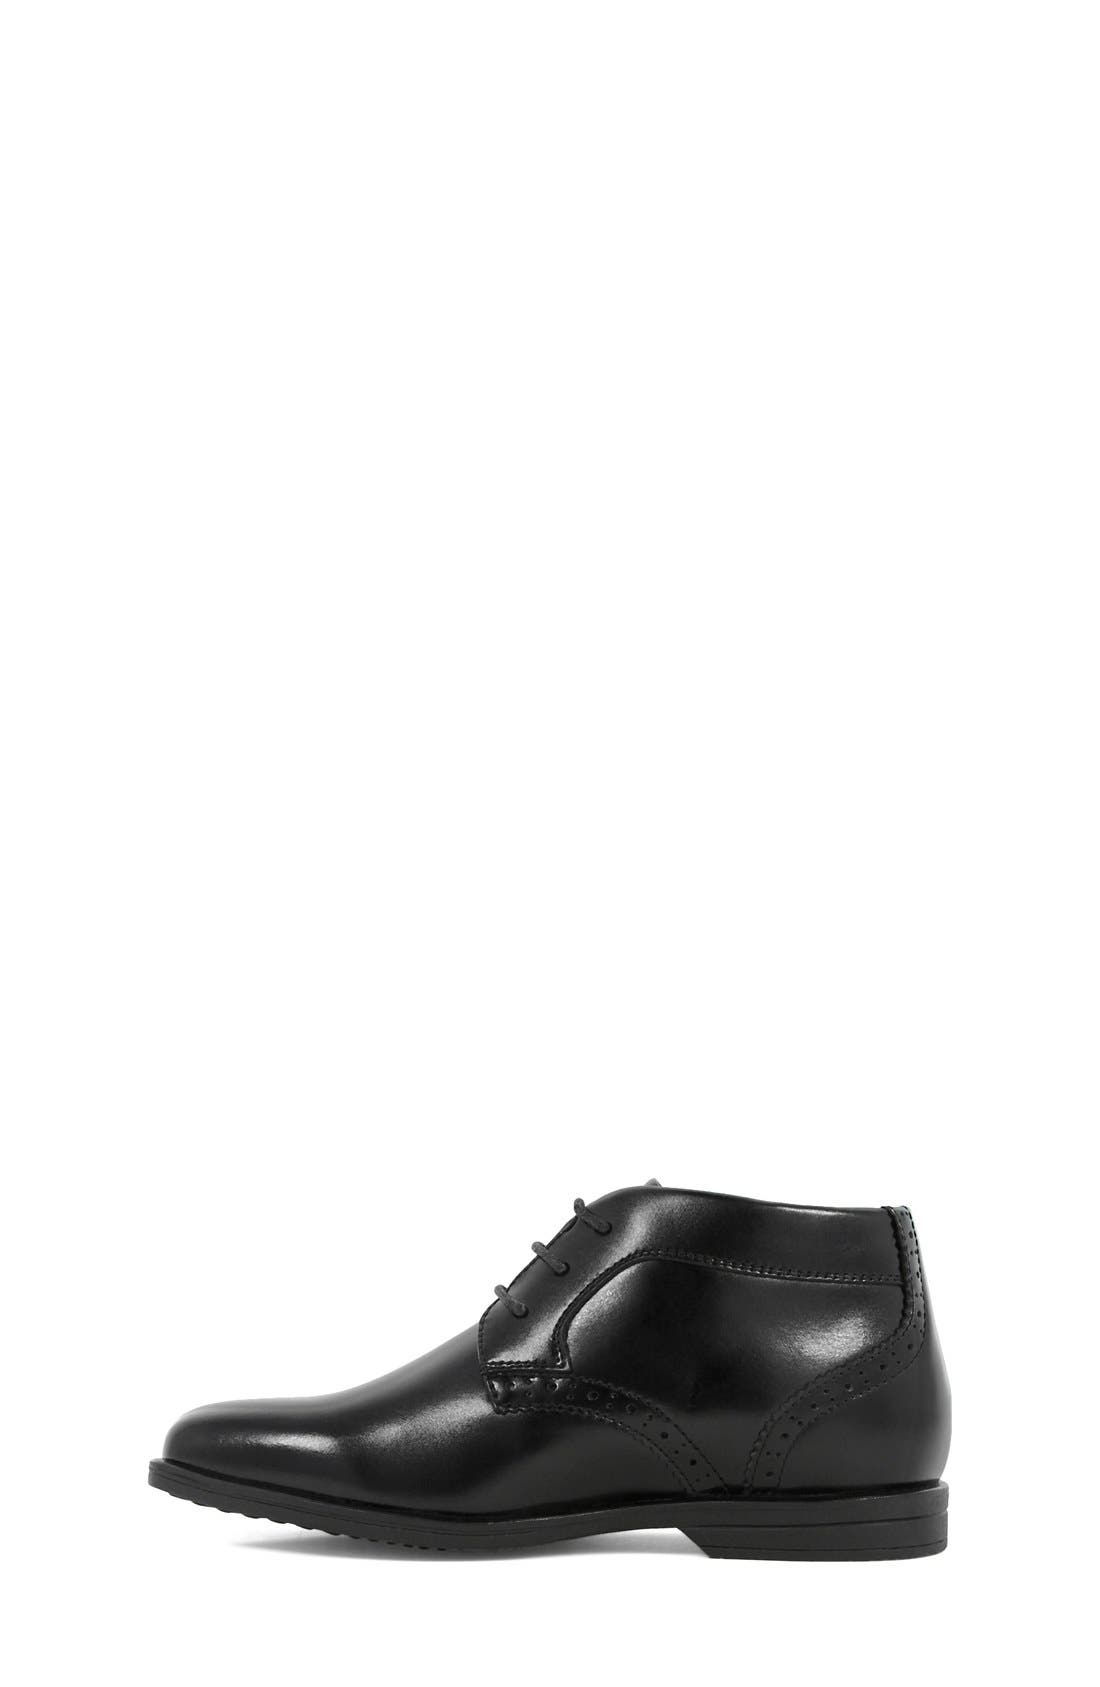 'Reveal' Chukka Boot,                             Alternate thumbnail 6, color,                             BLACK LEATHER